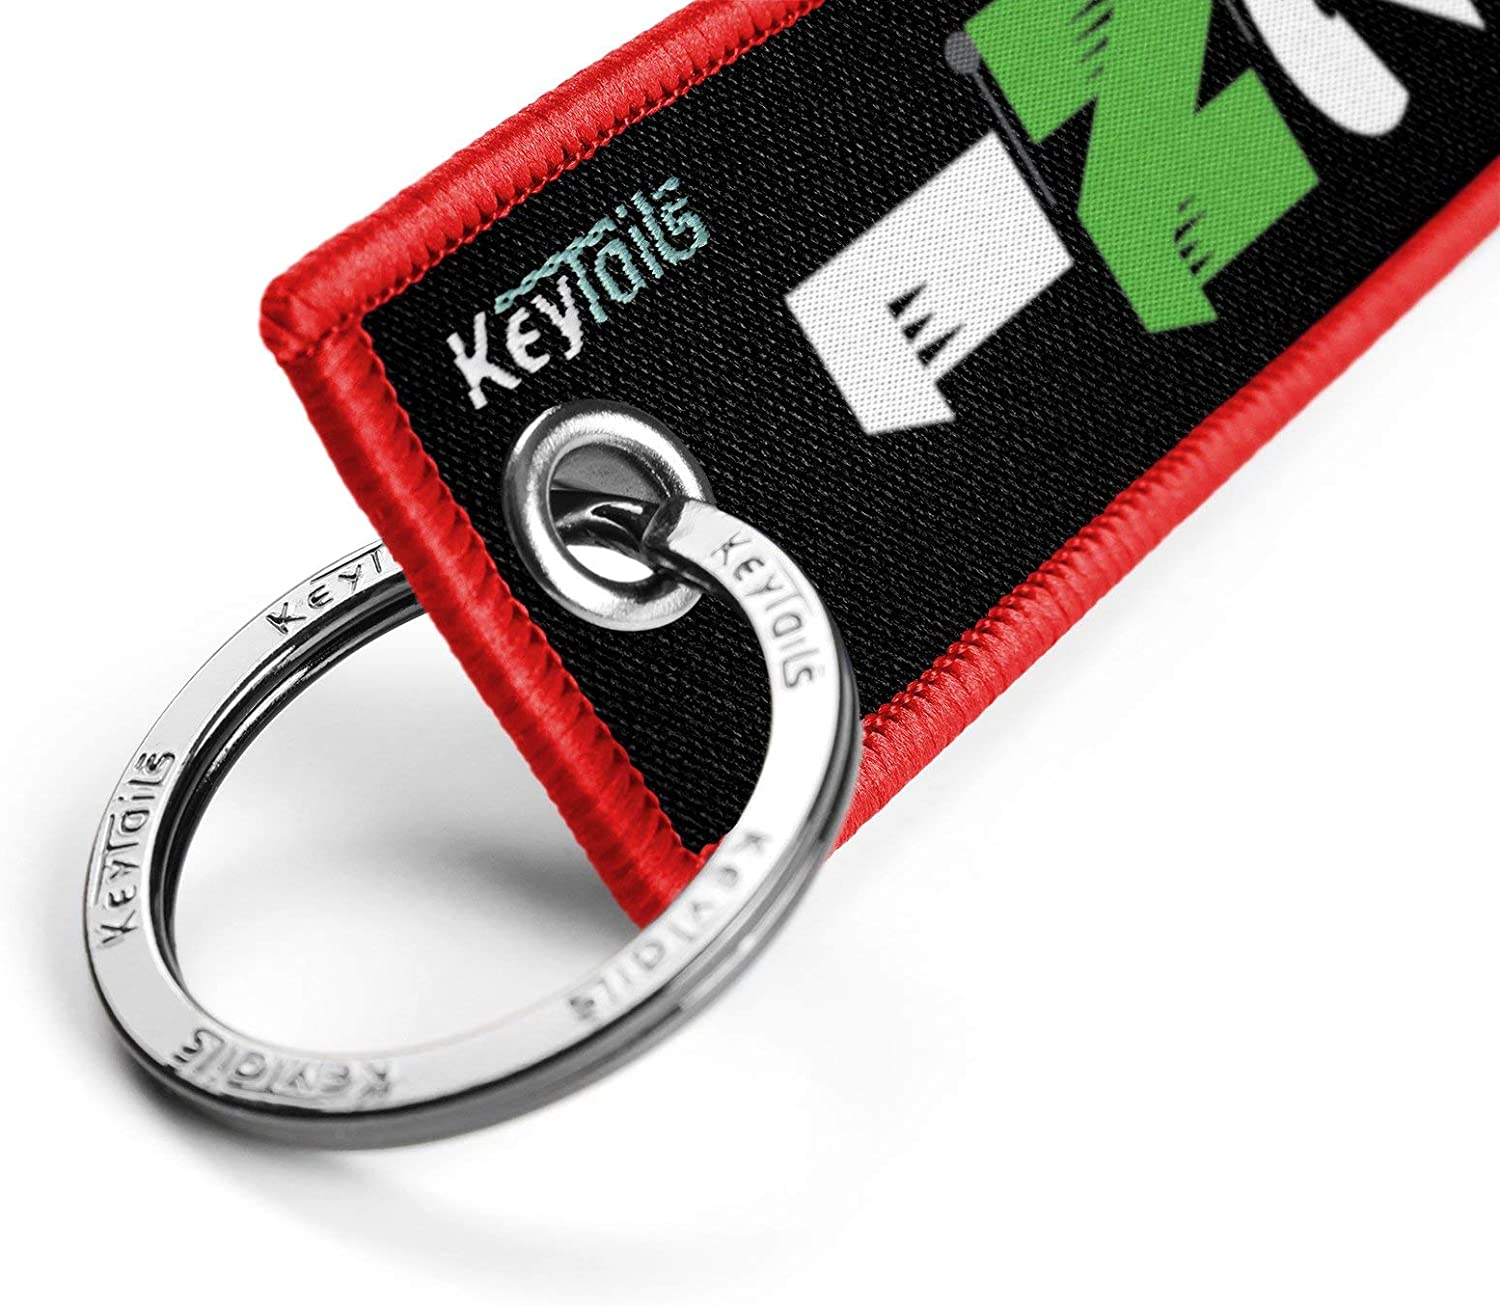 Premium Quality Key Tag for Motorcycle KEYTAILS Keychains 1 Down 5 Up - 65432N1 Sportbike